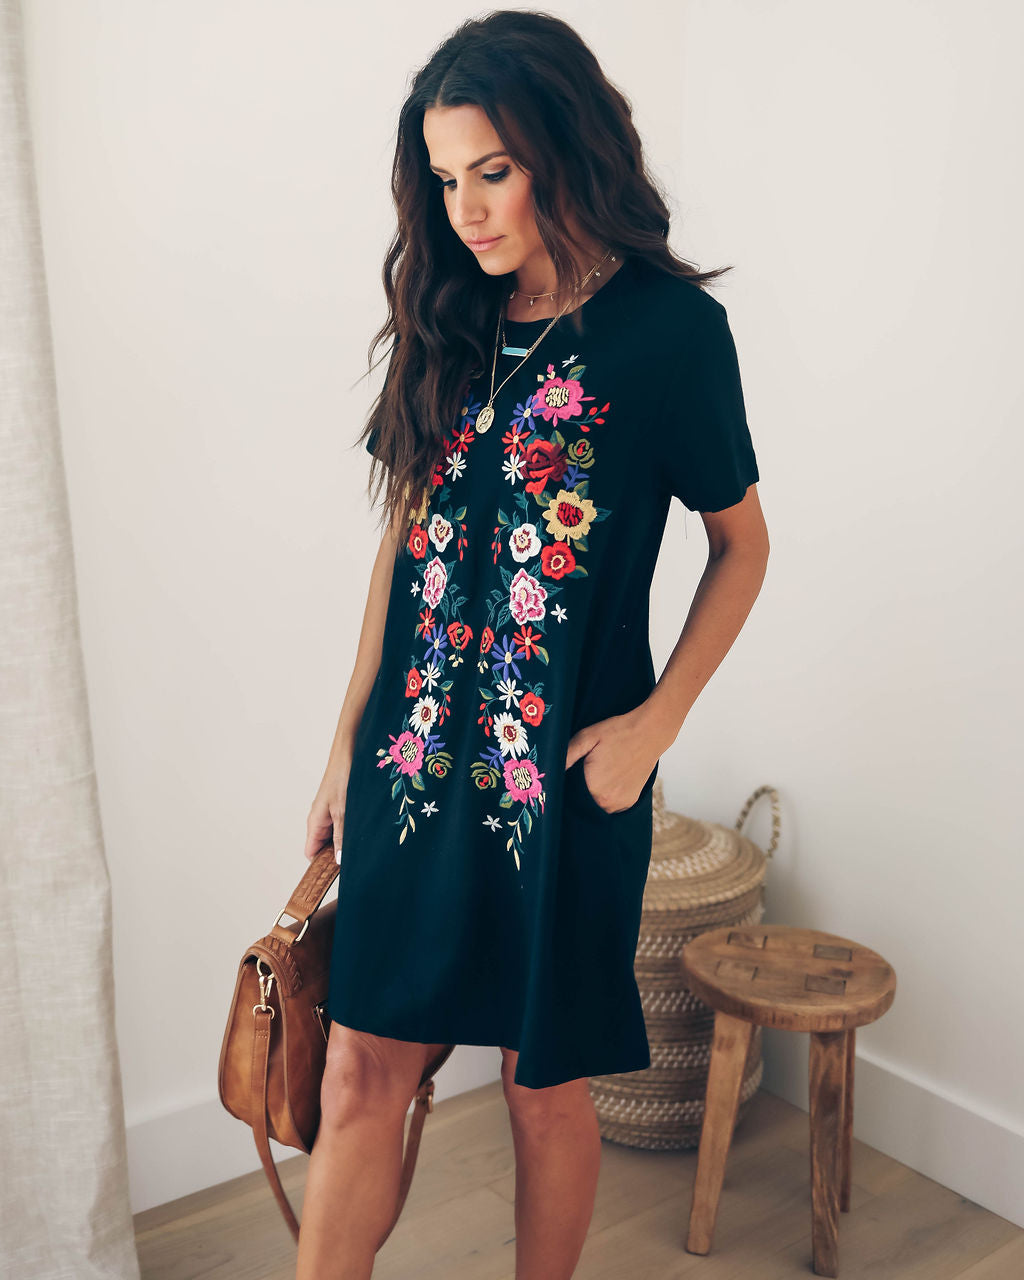 d228b861f461 Detail Product. FILTER ← Home - BOHO - Heirloom Embroidered Pocketed Shirt  Dress - Black